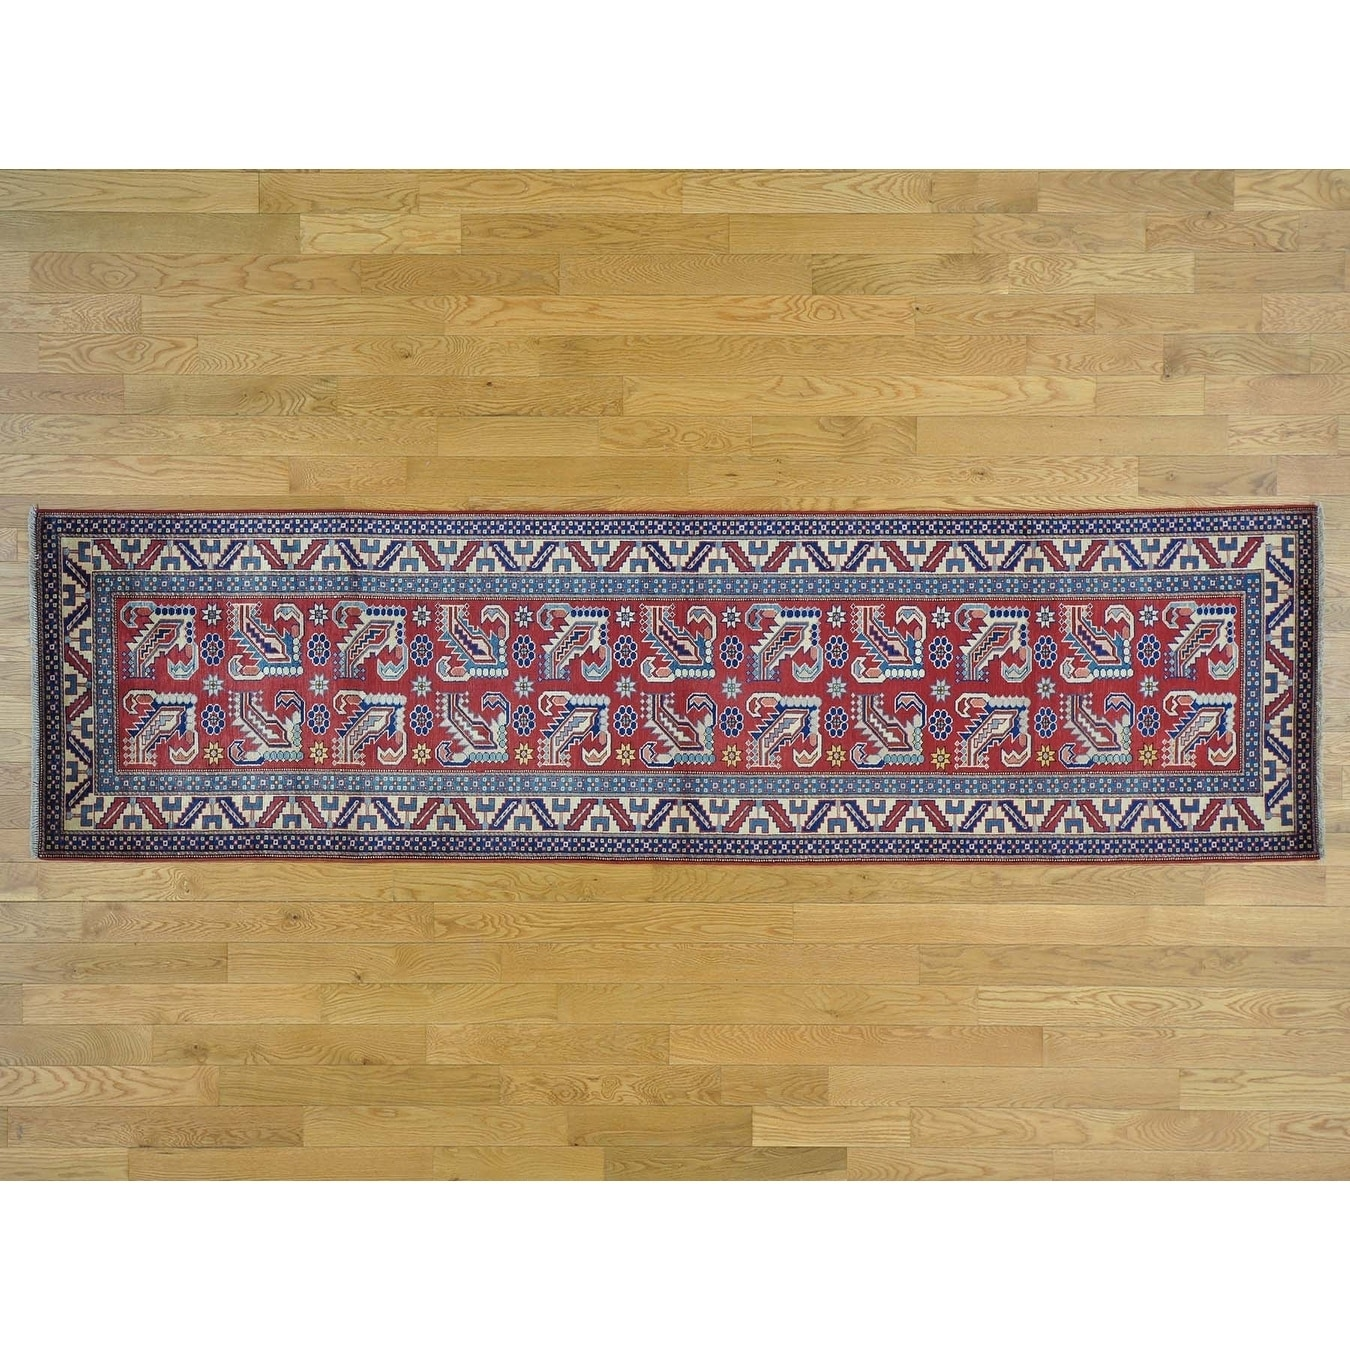 Hand Knotted Red Kazak with Wool Oriental Rug - 210 x 104